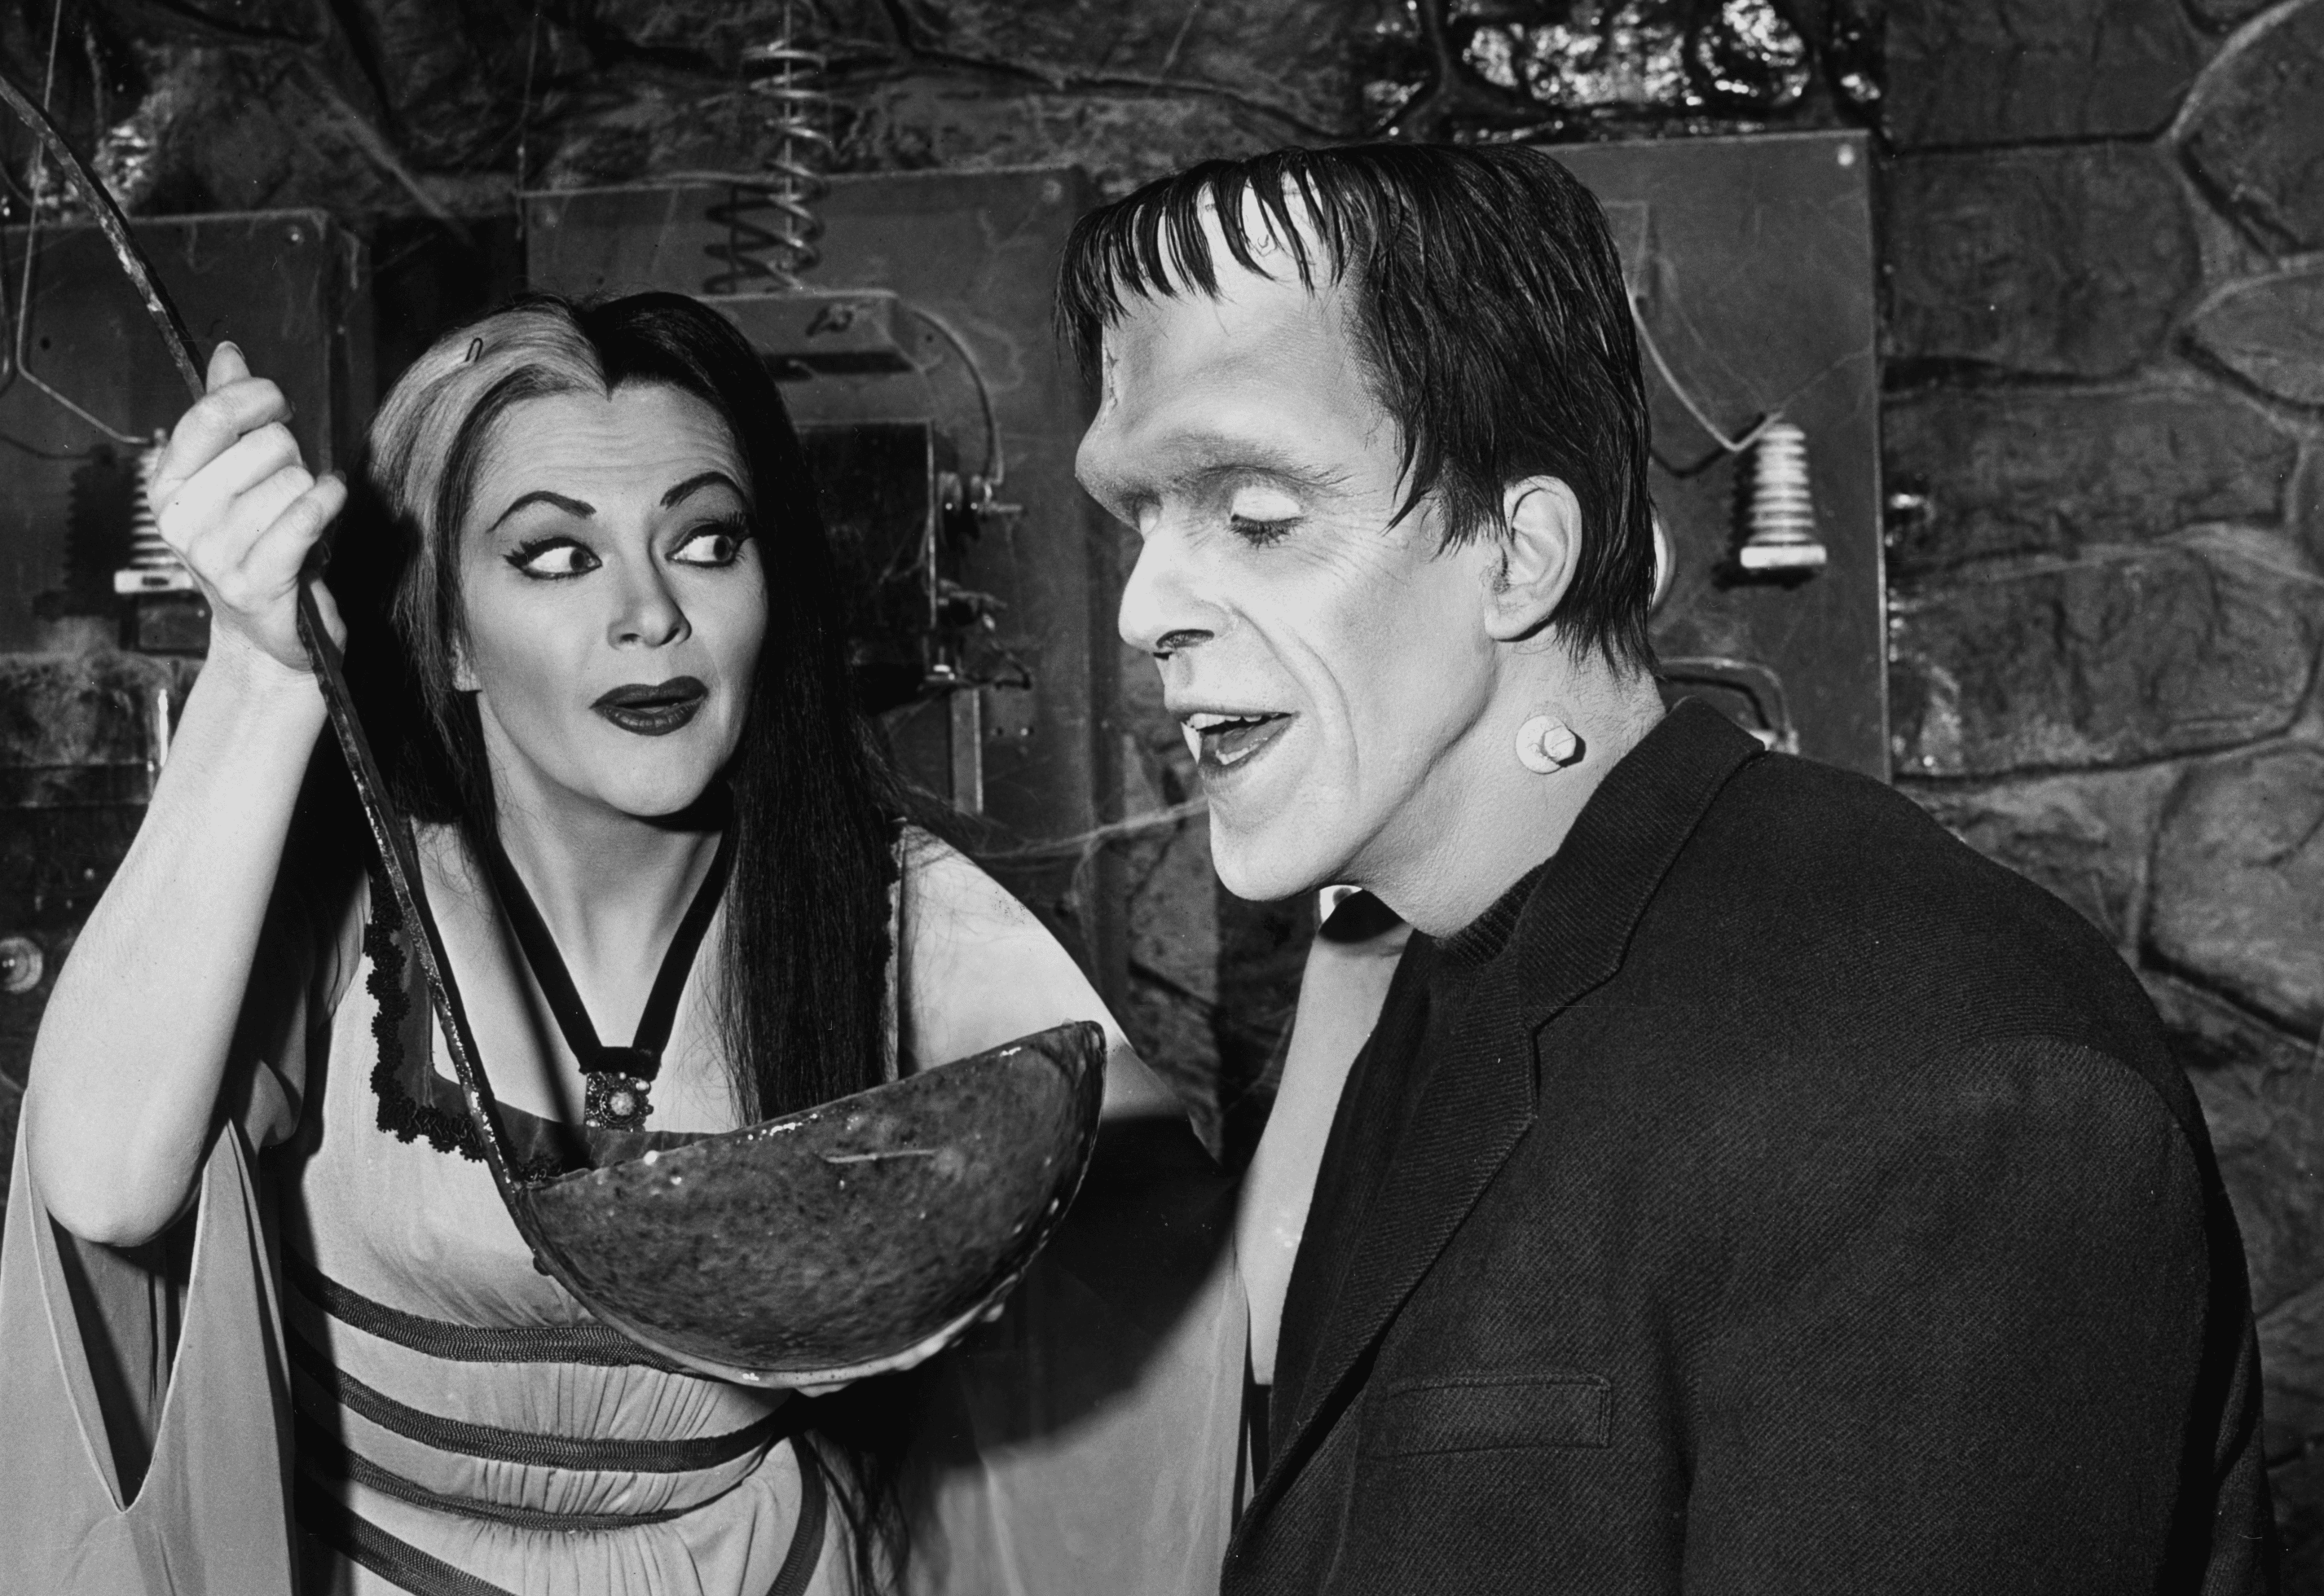 Biography of Fred Gwynne, Star of TV's The Munsters